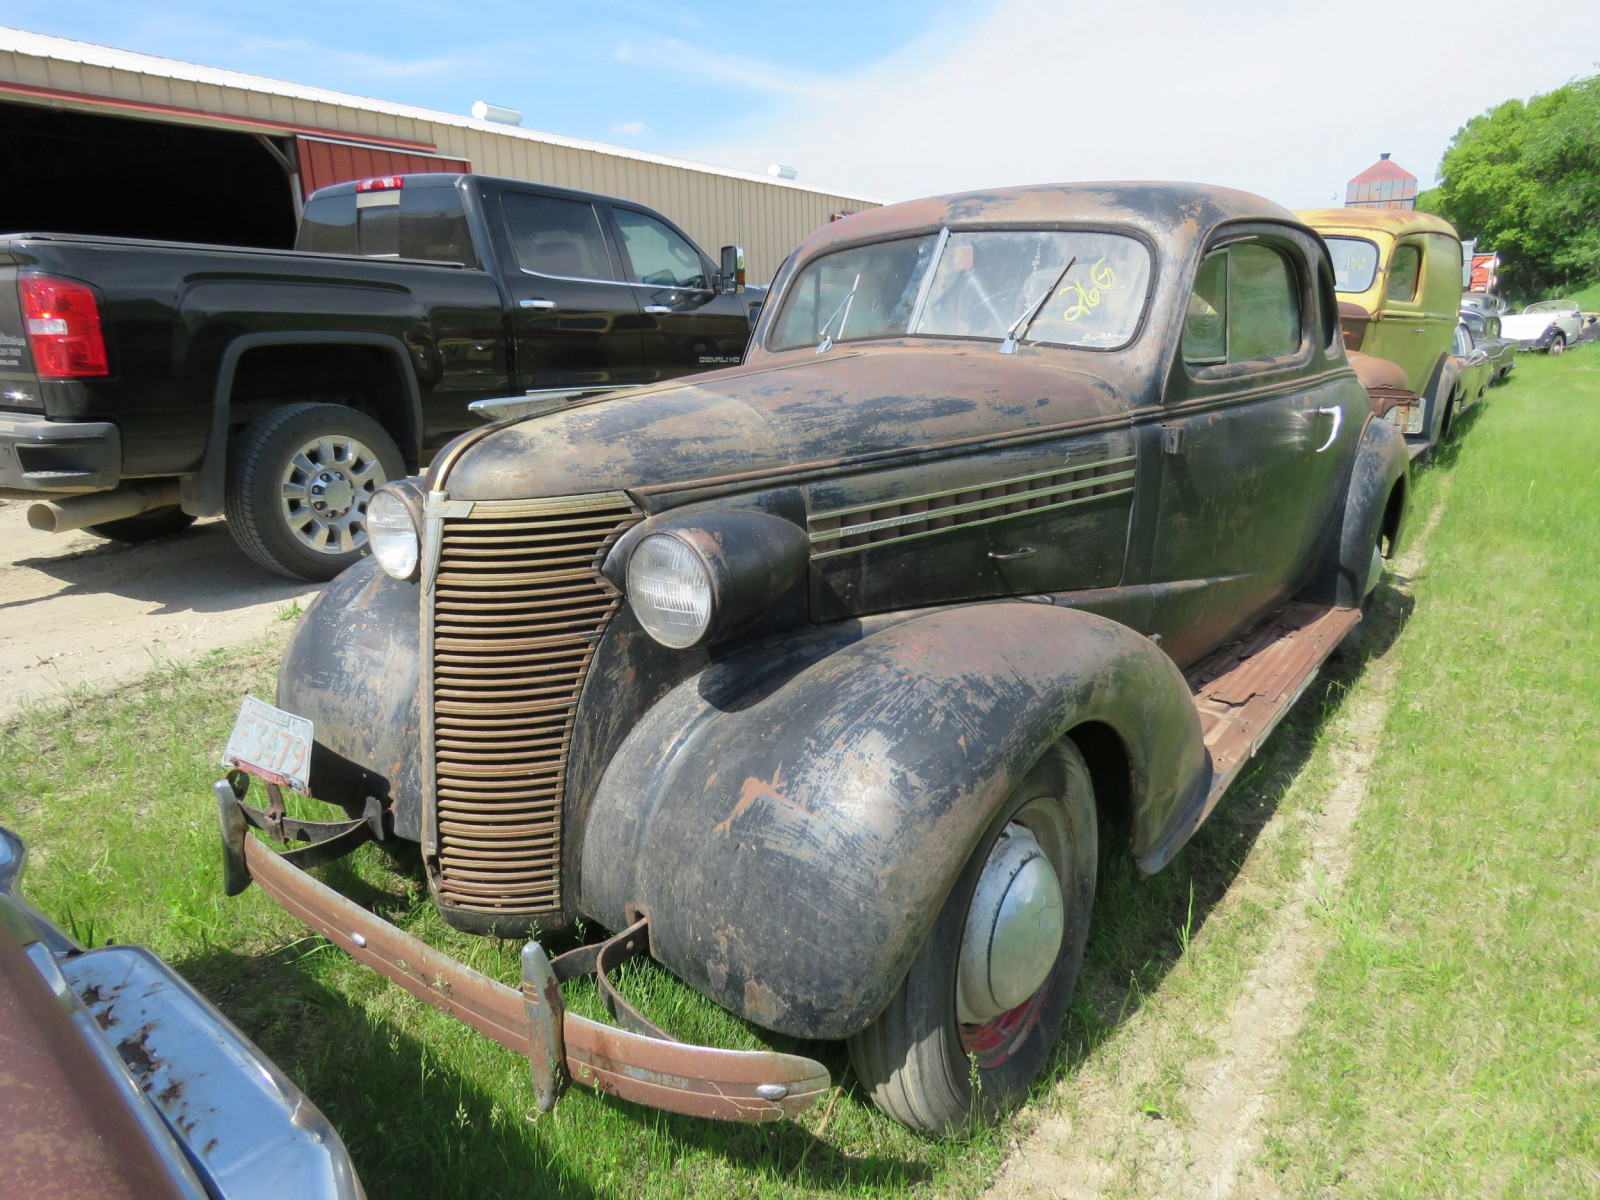 1938 Chevrolet Master Deluxe Coupe 21HA12 15228 - Image 1